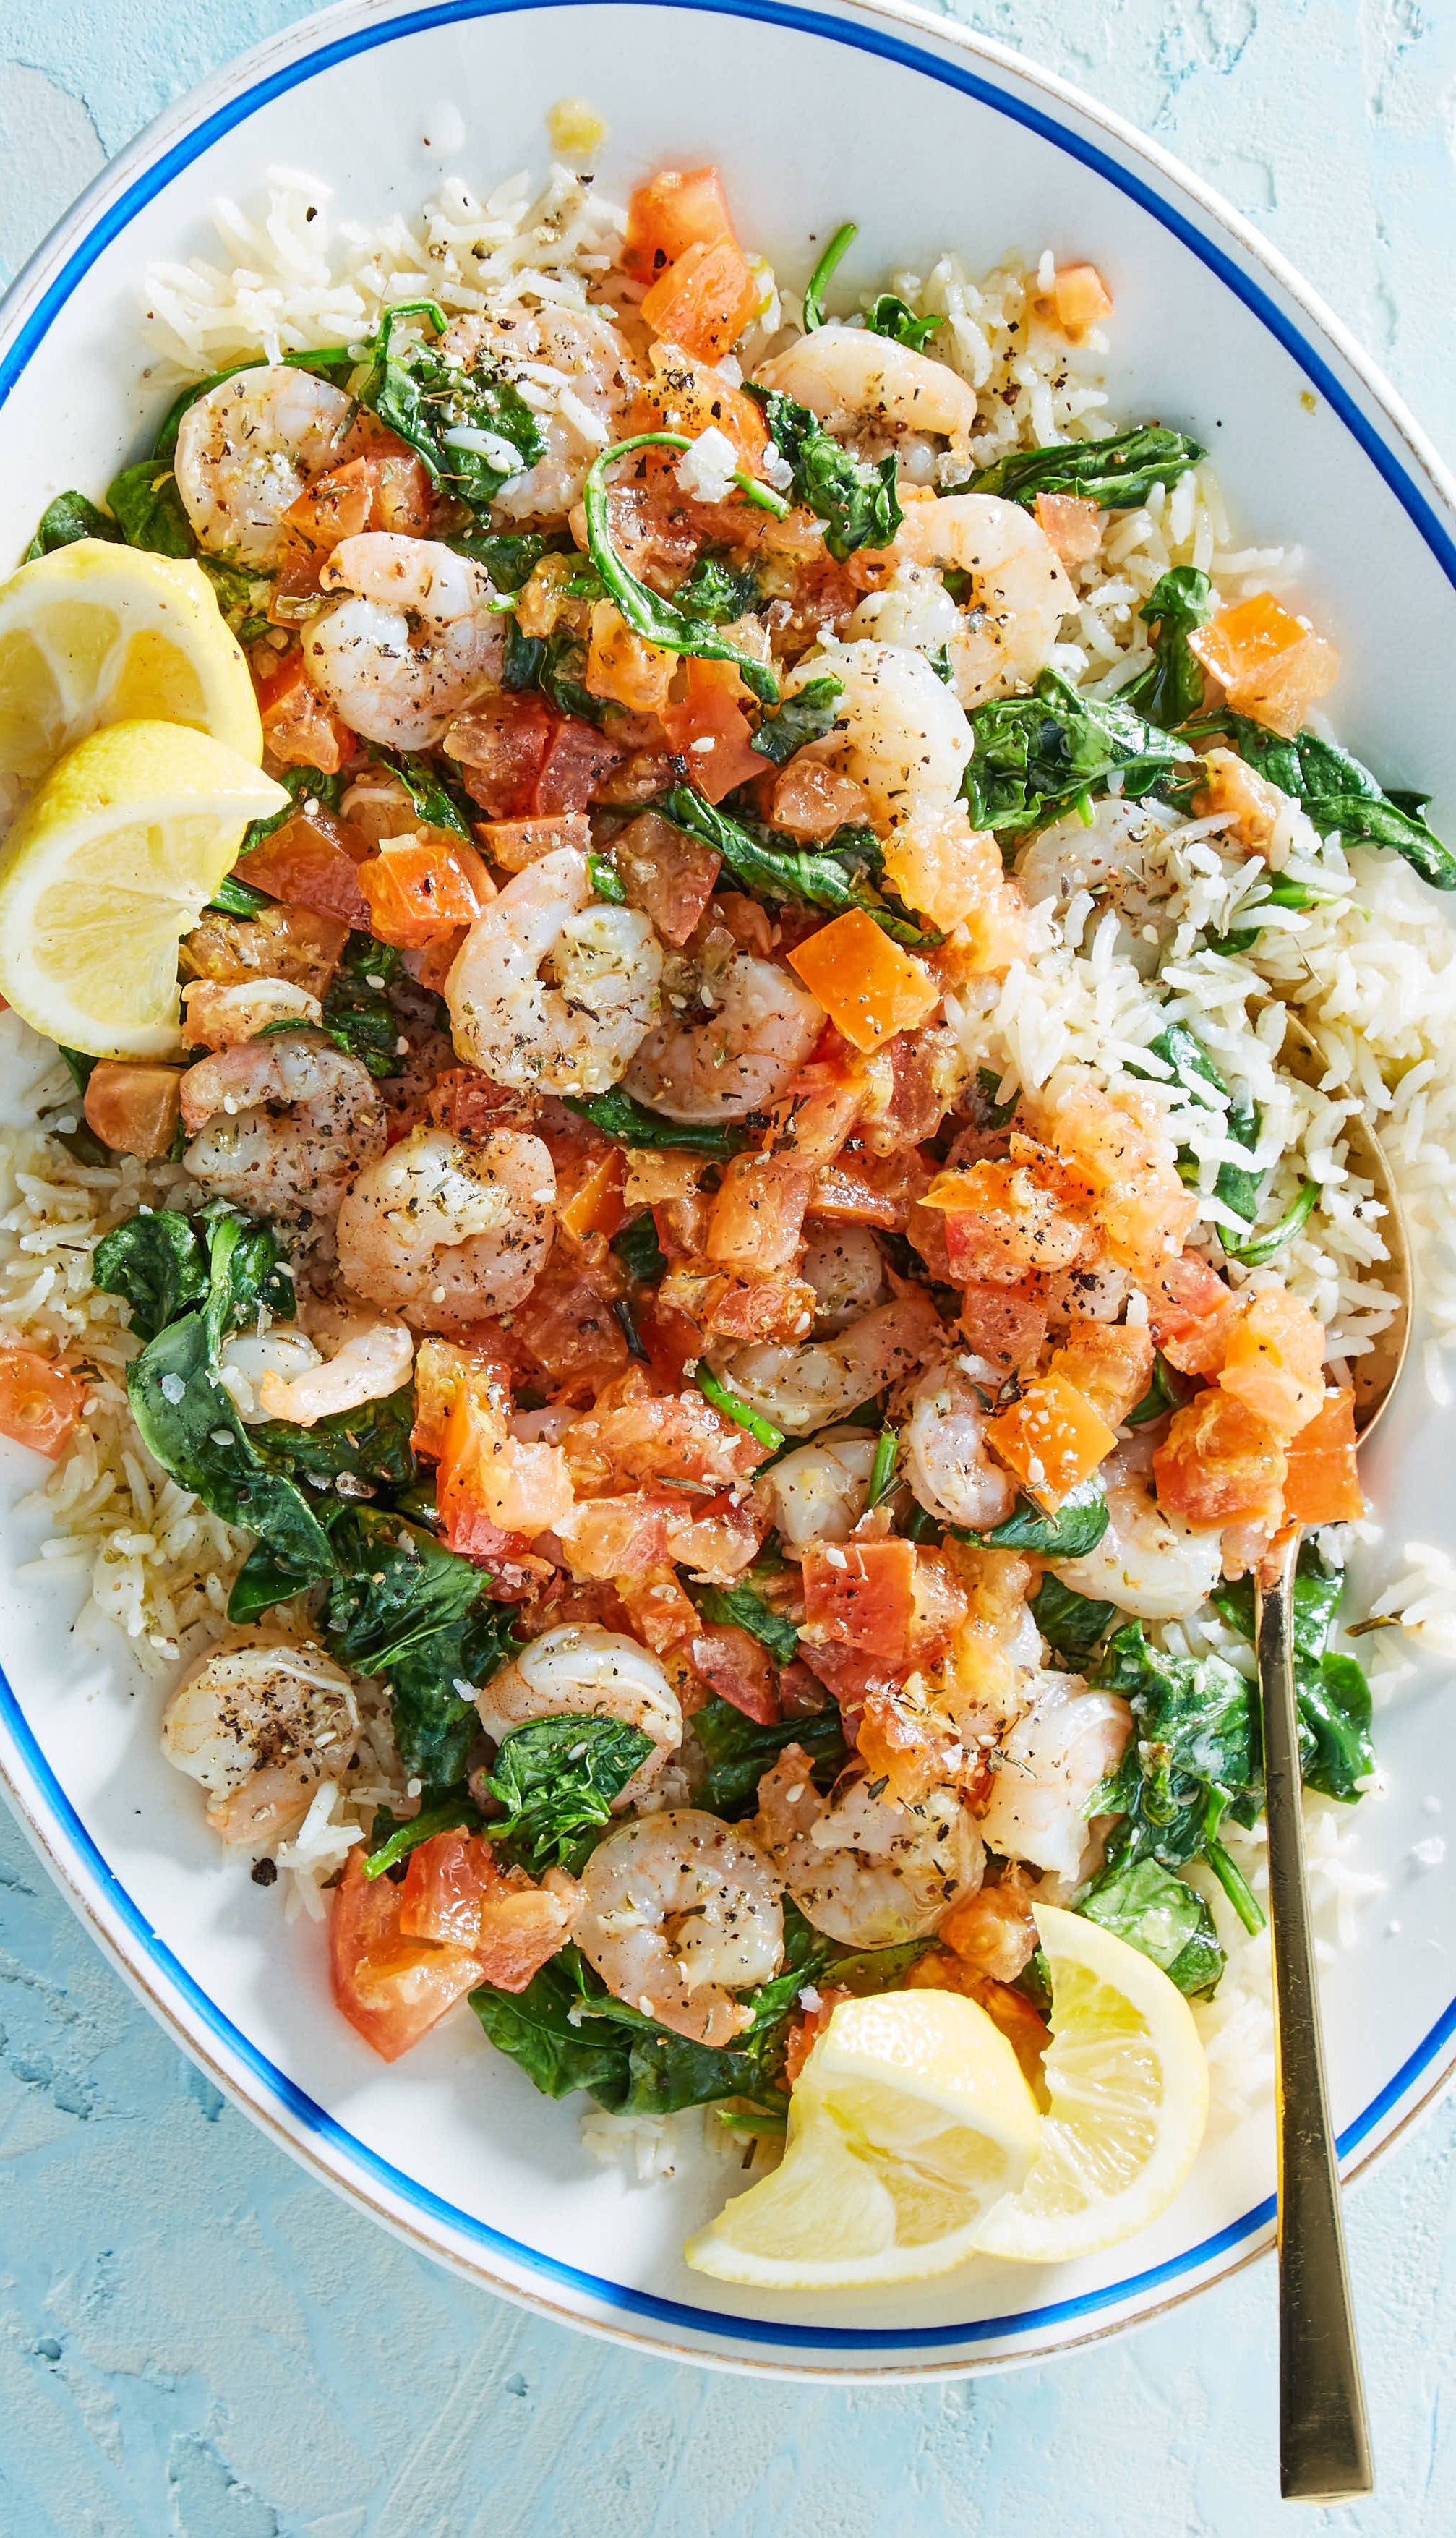 Brighten up your winter with this Mediterranean shrimp scampi from Martha Stewart's meal kit delivery service, Martha & Marley Spoon! The shrimp are coated in Za'atar spice blend, then quickly broiled to perfection and placed atop a layer of fluffy basmati rice pilaf. A zingy tomato salsa with lemon zest, juice, and garlic finishes this dish. Sign up today to get trusted recipes and fresh ingredients delivered to your door!